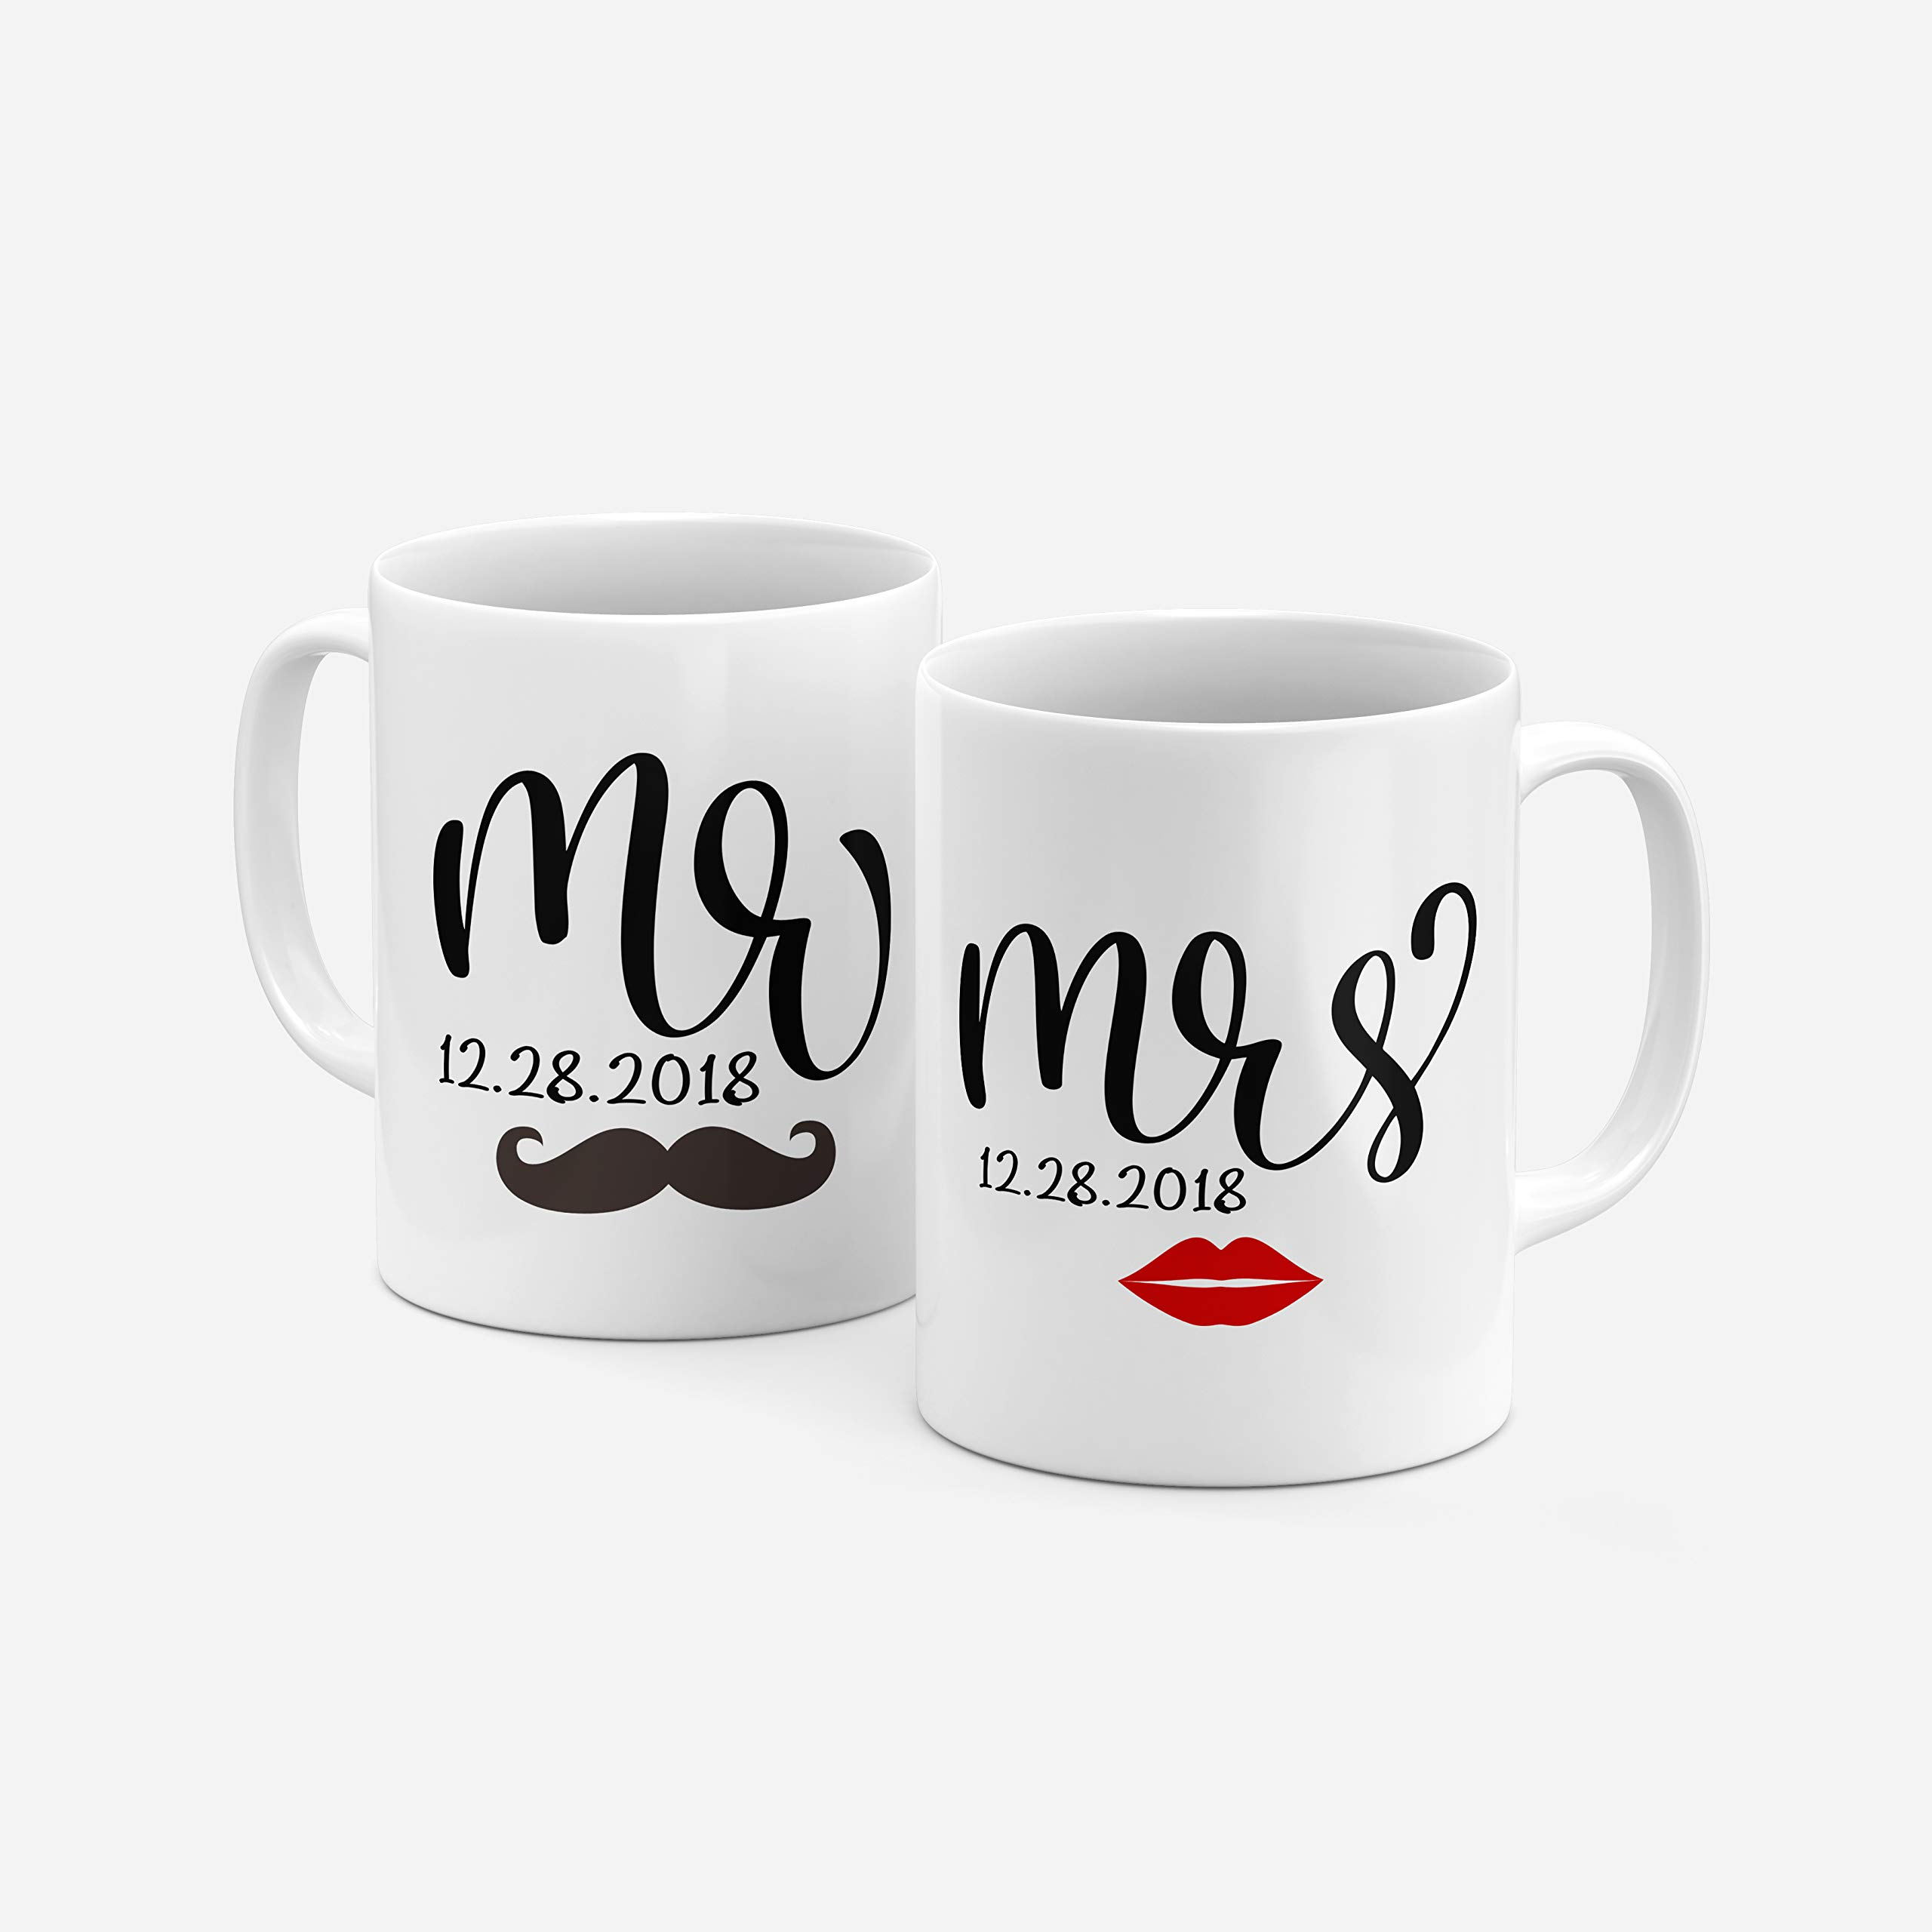 Mr and Mrs Couple Matching Coffee Mug Gifts with Your Name - 9 Different Designs - Wedding Favors,Party Favors, Groomsmen Gifts, Housewarming Gifts -Design 7